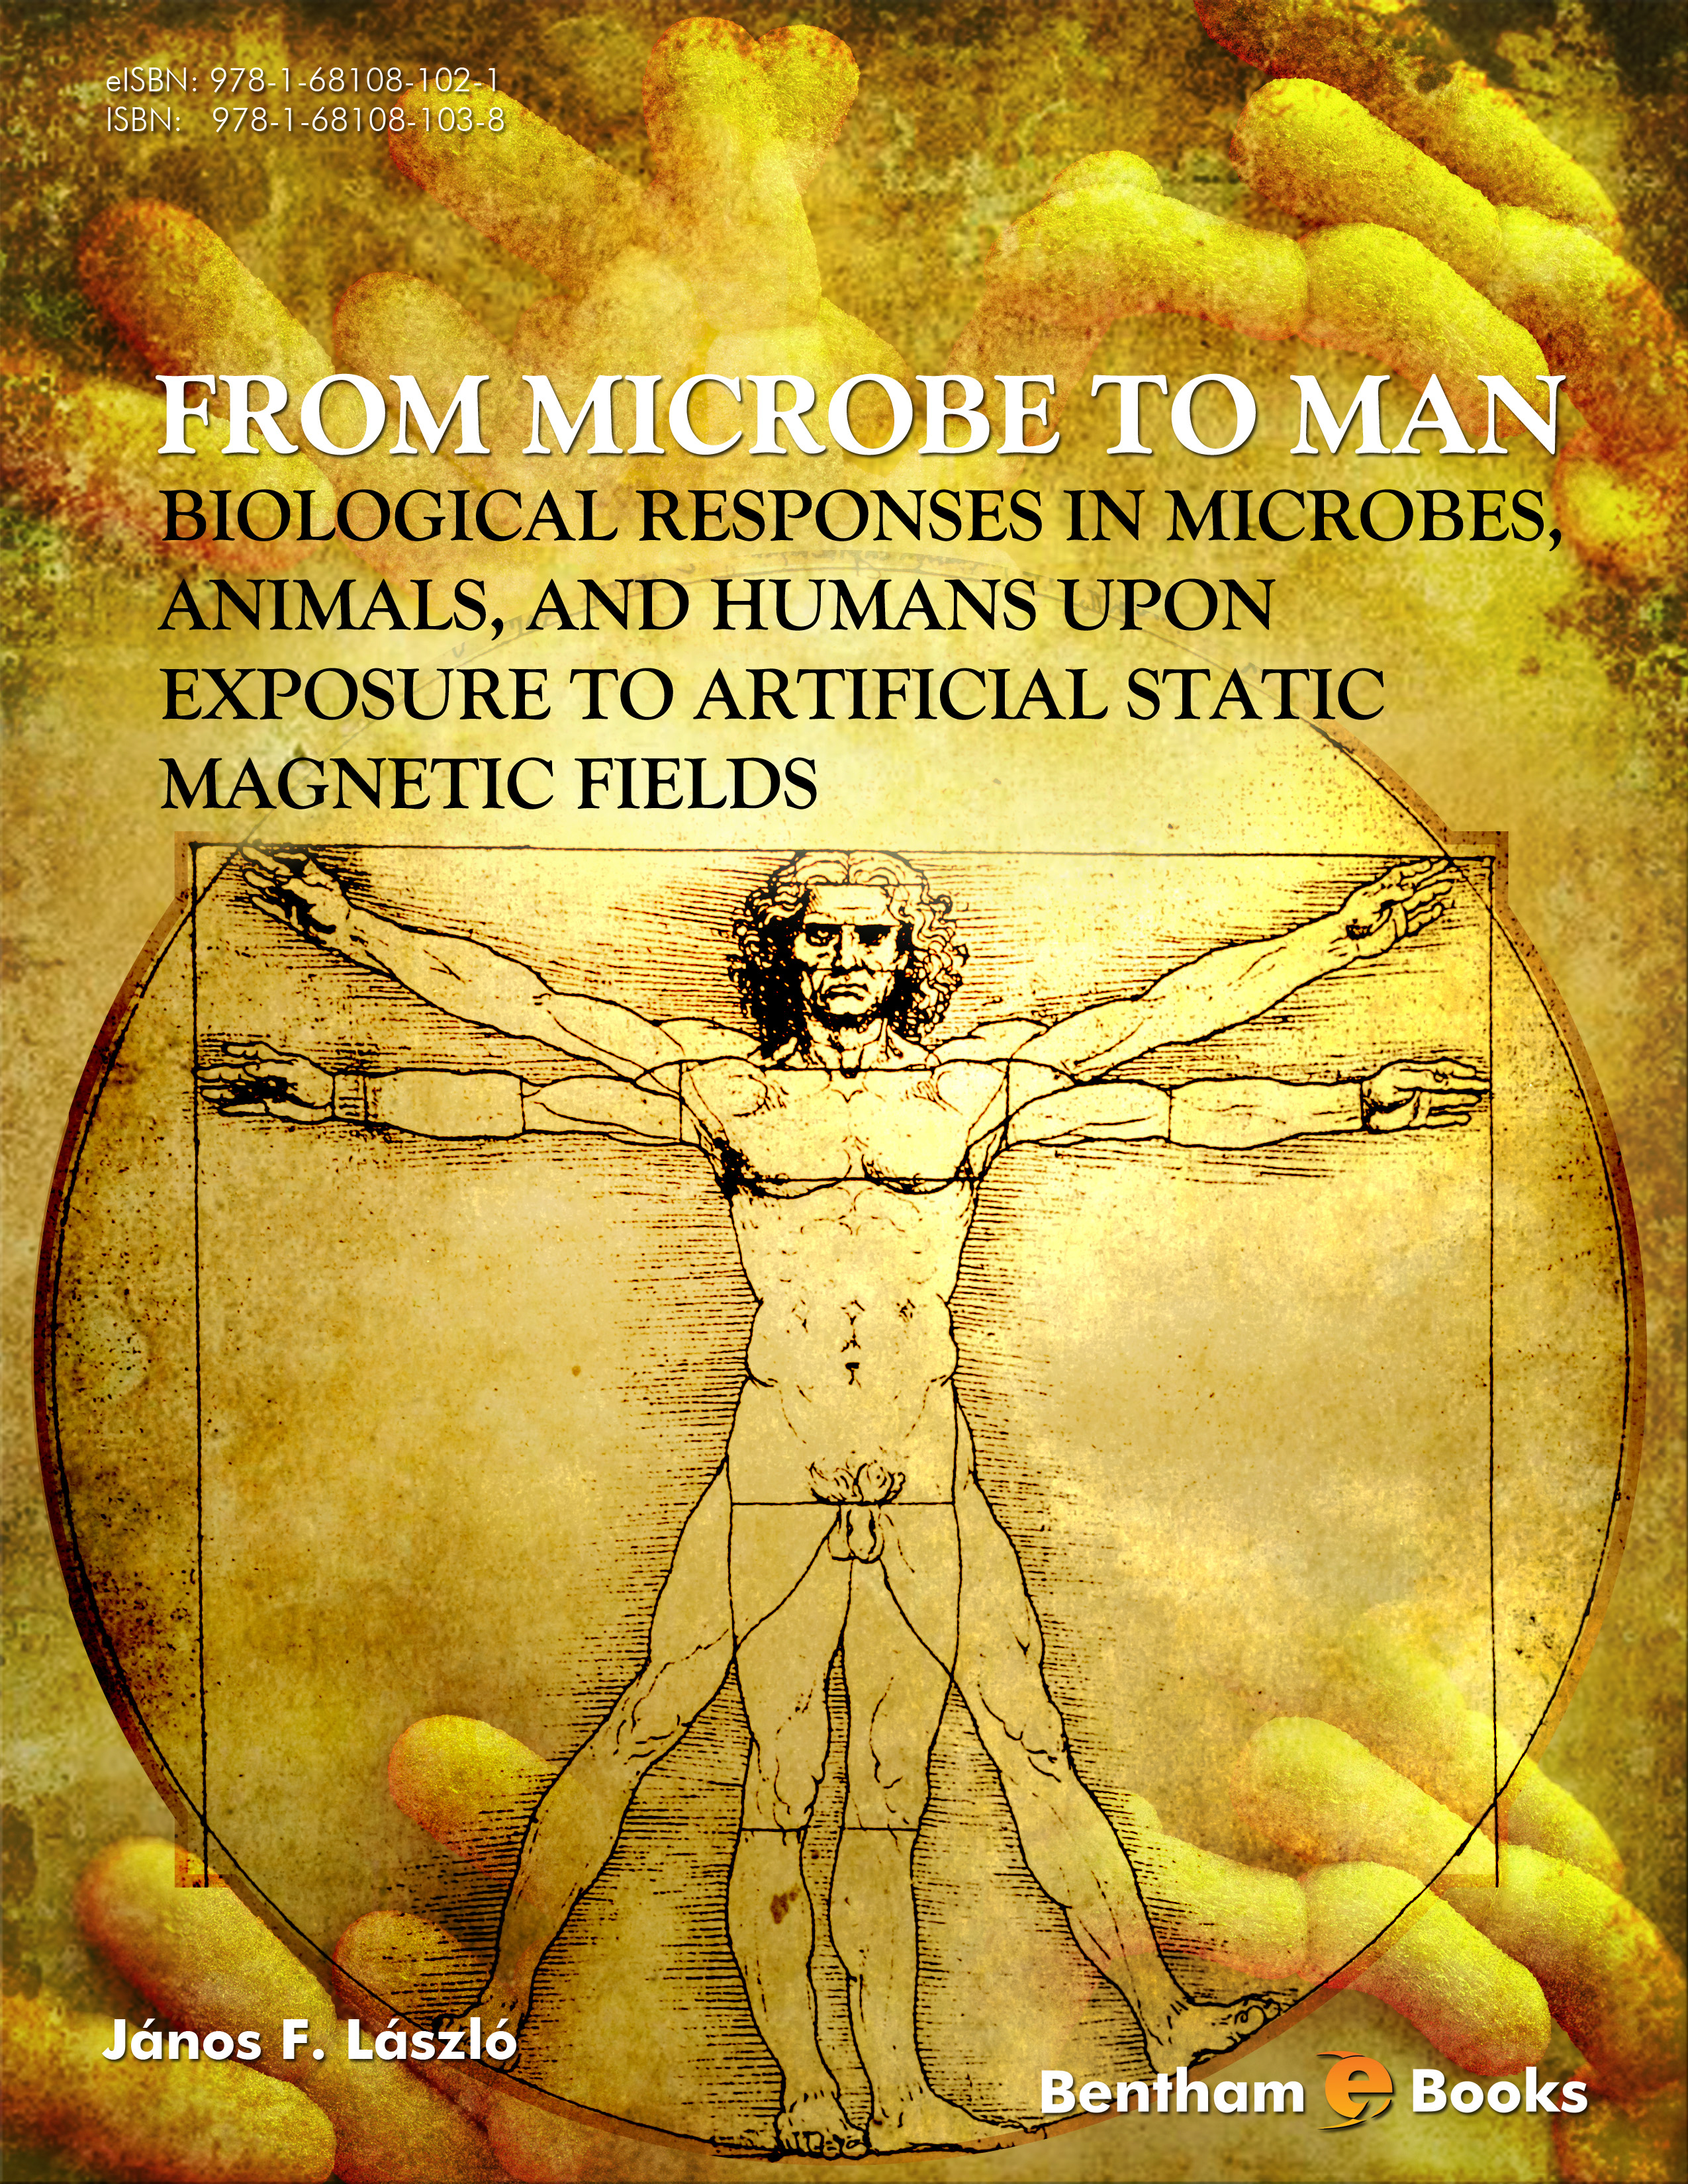 From Microbe to Man: Biological Responses in Microbes, Animals, and Humans Upon Exposure to Artificial Static Magnetic Fields